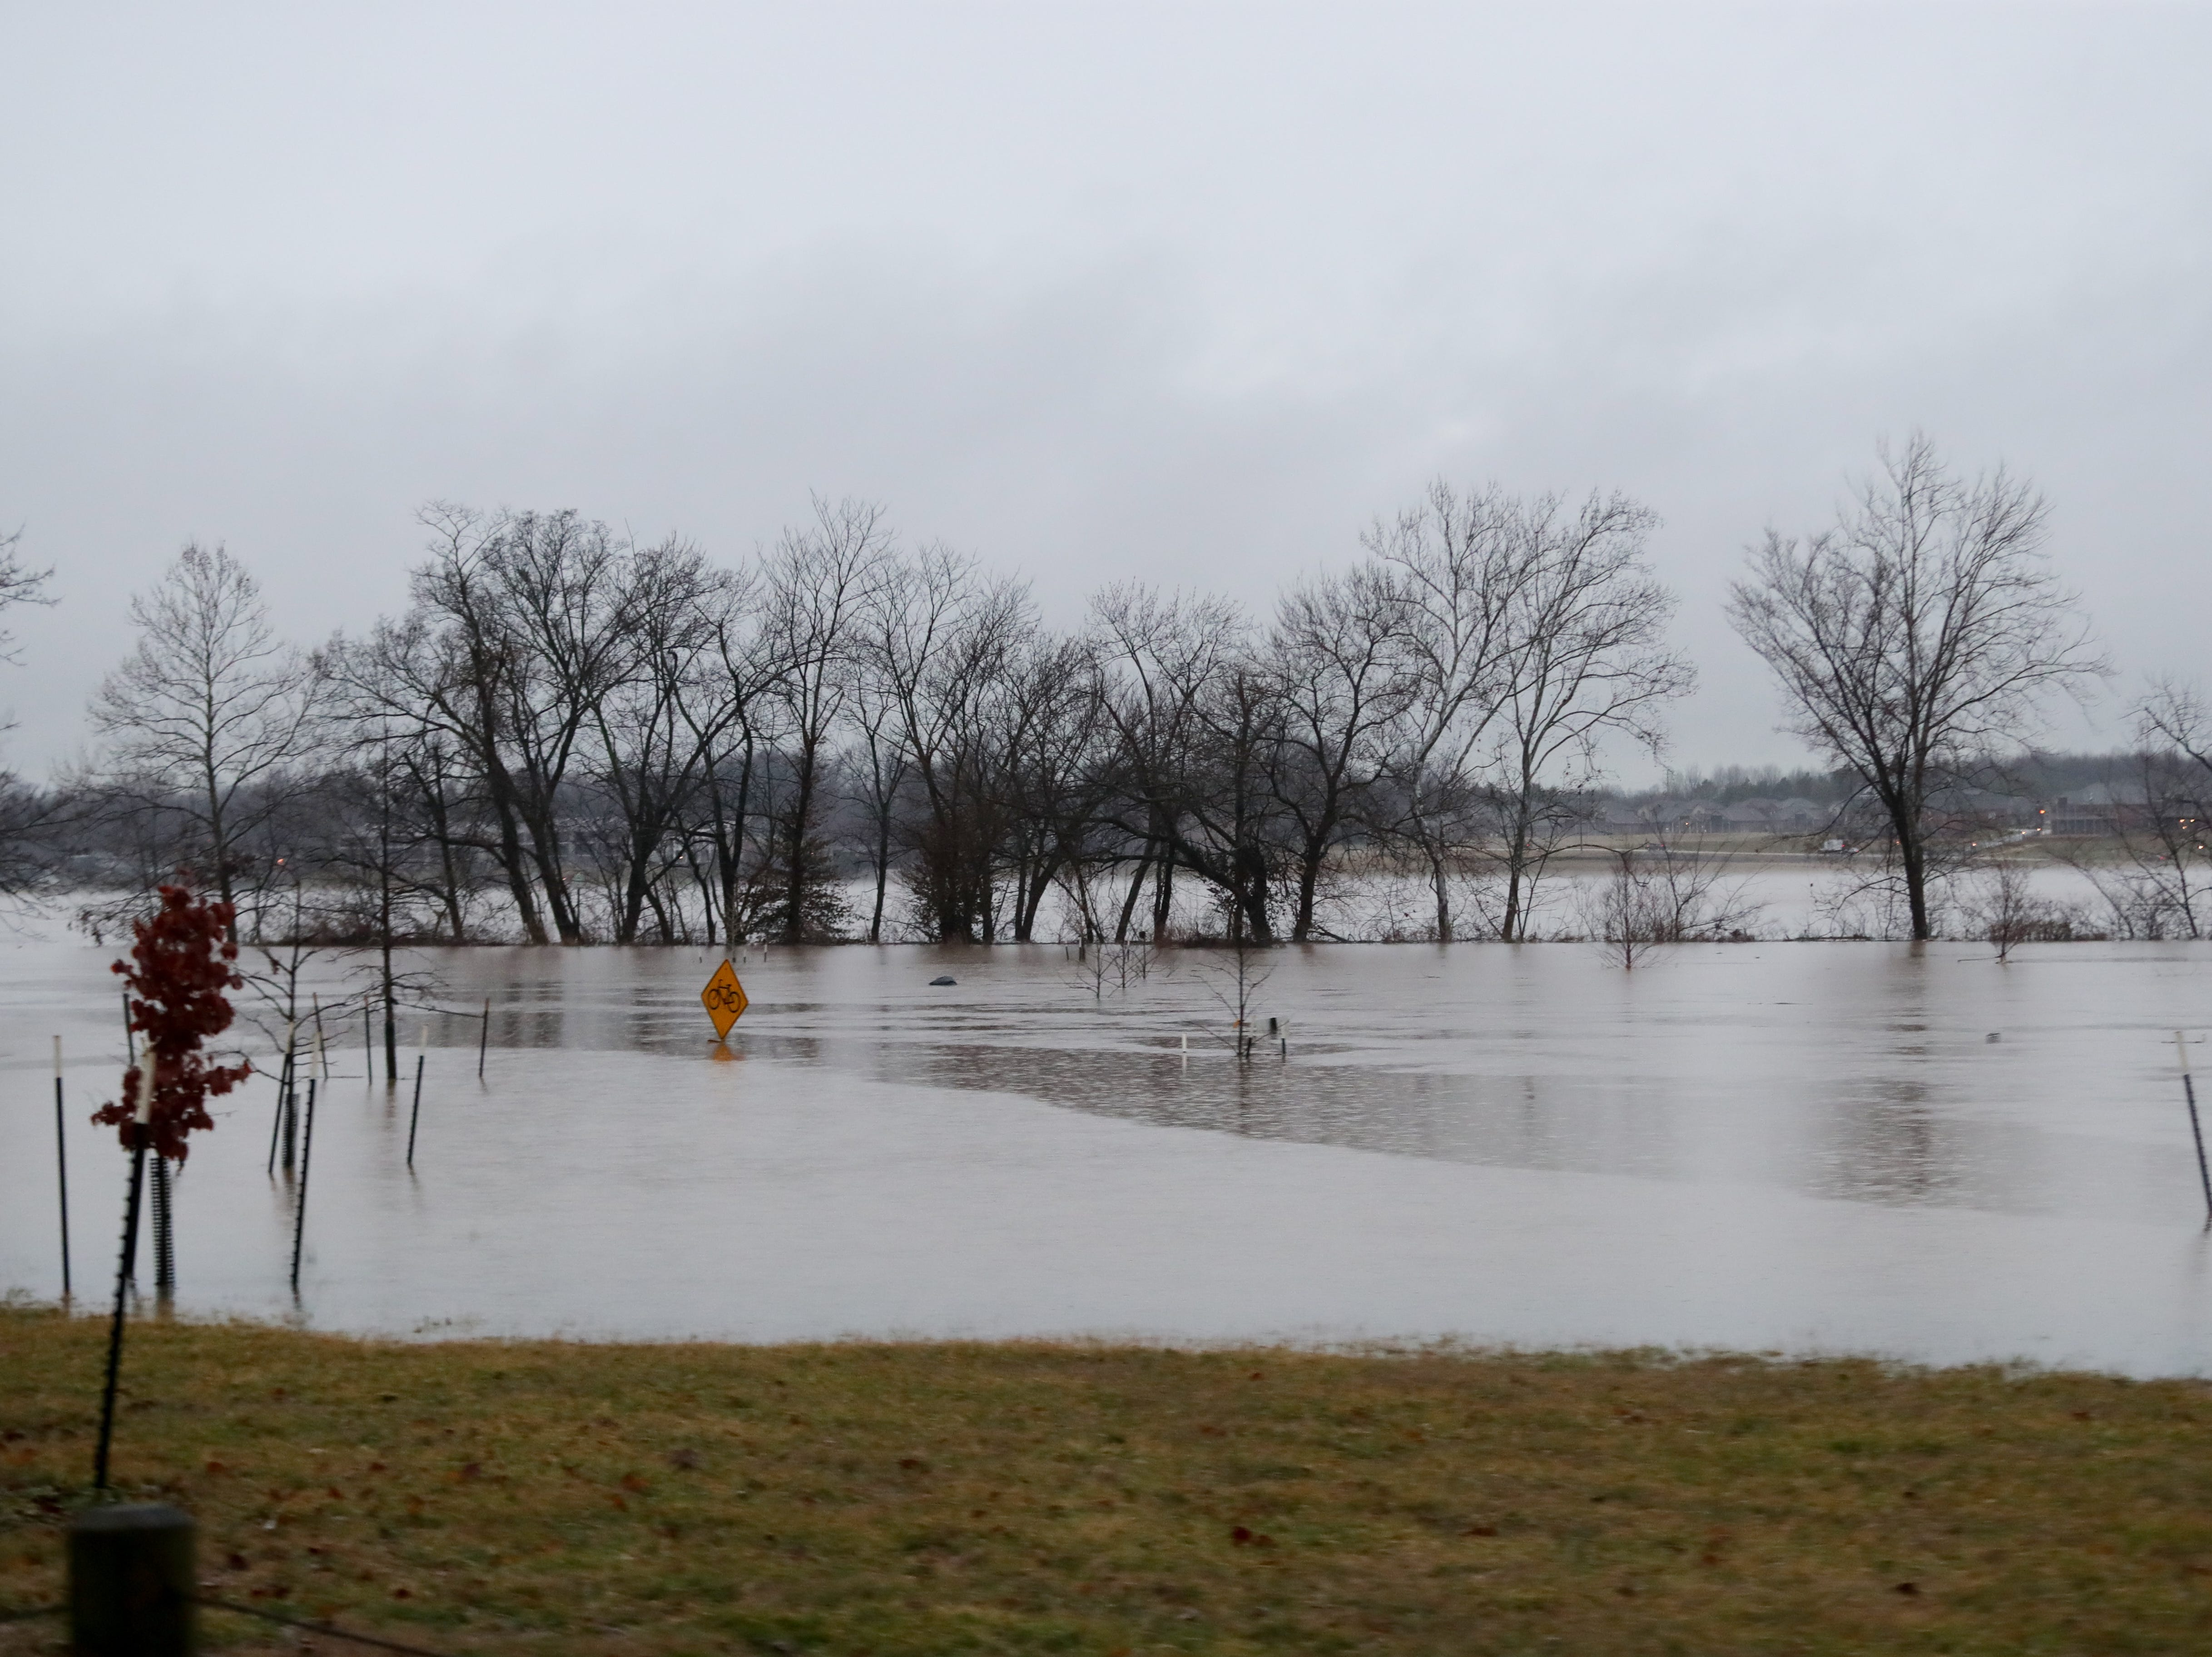 Cox Park is flooded in areas Tuesday morning. Feb. 12, 2019